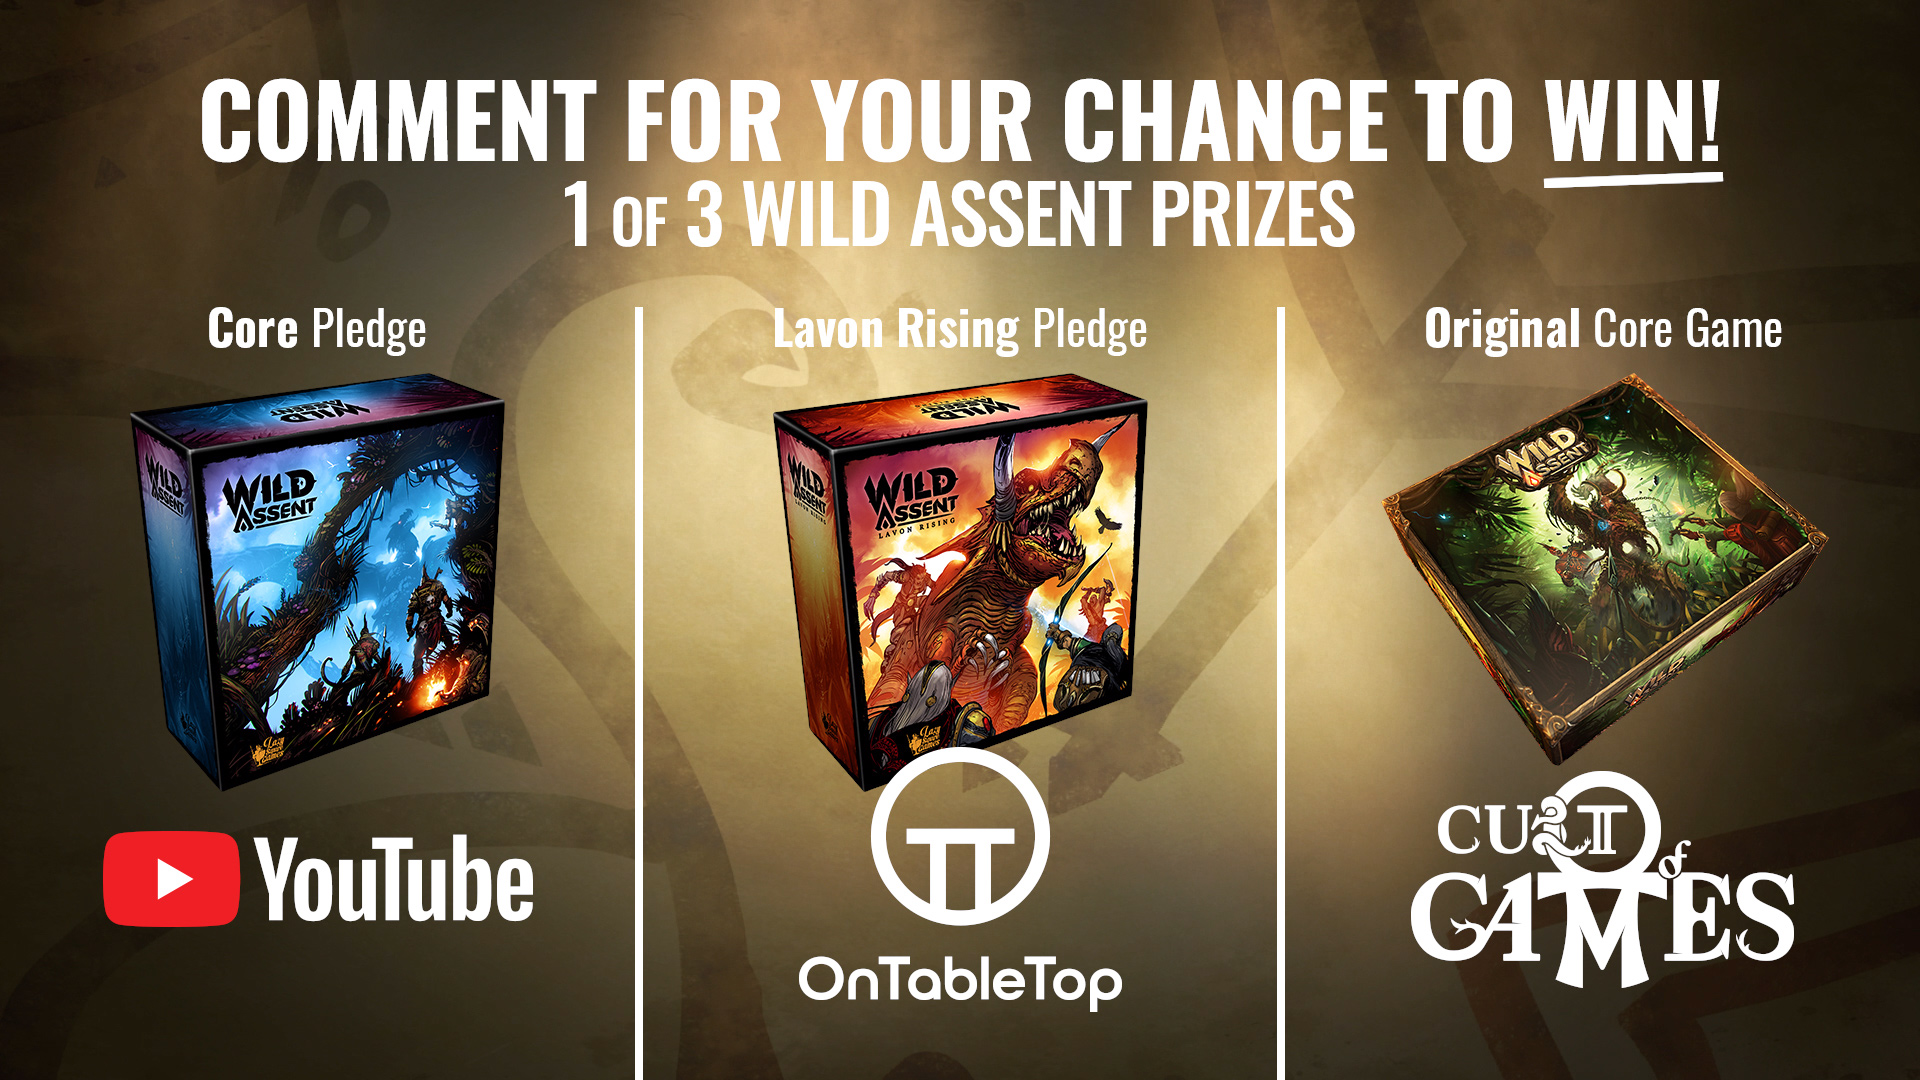 Wild_Assent_Week_OnTableTop_Prizes_To_Be_Won